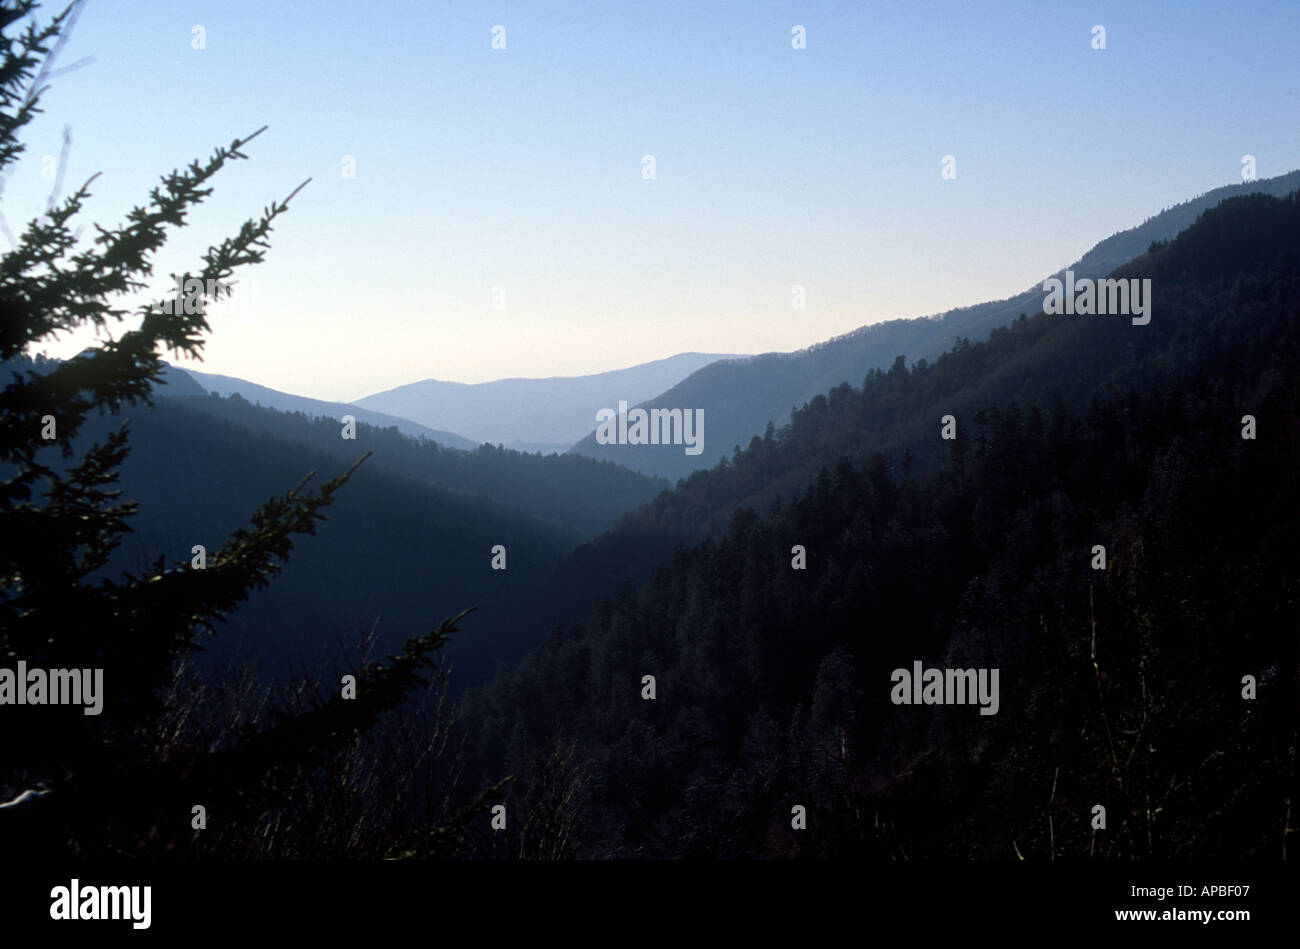 The great smoky mountains tennessee usa - Stock Image